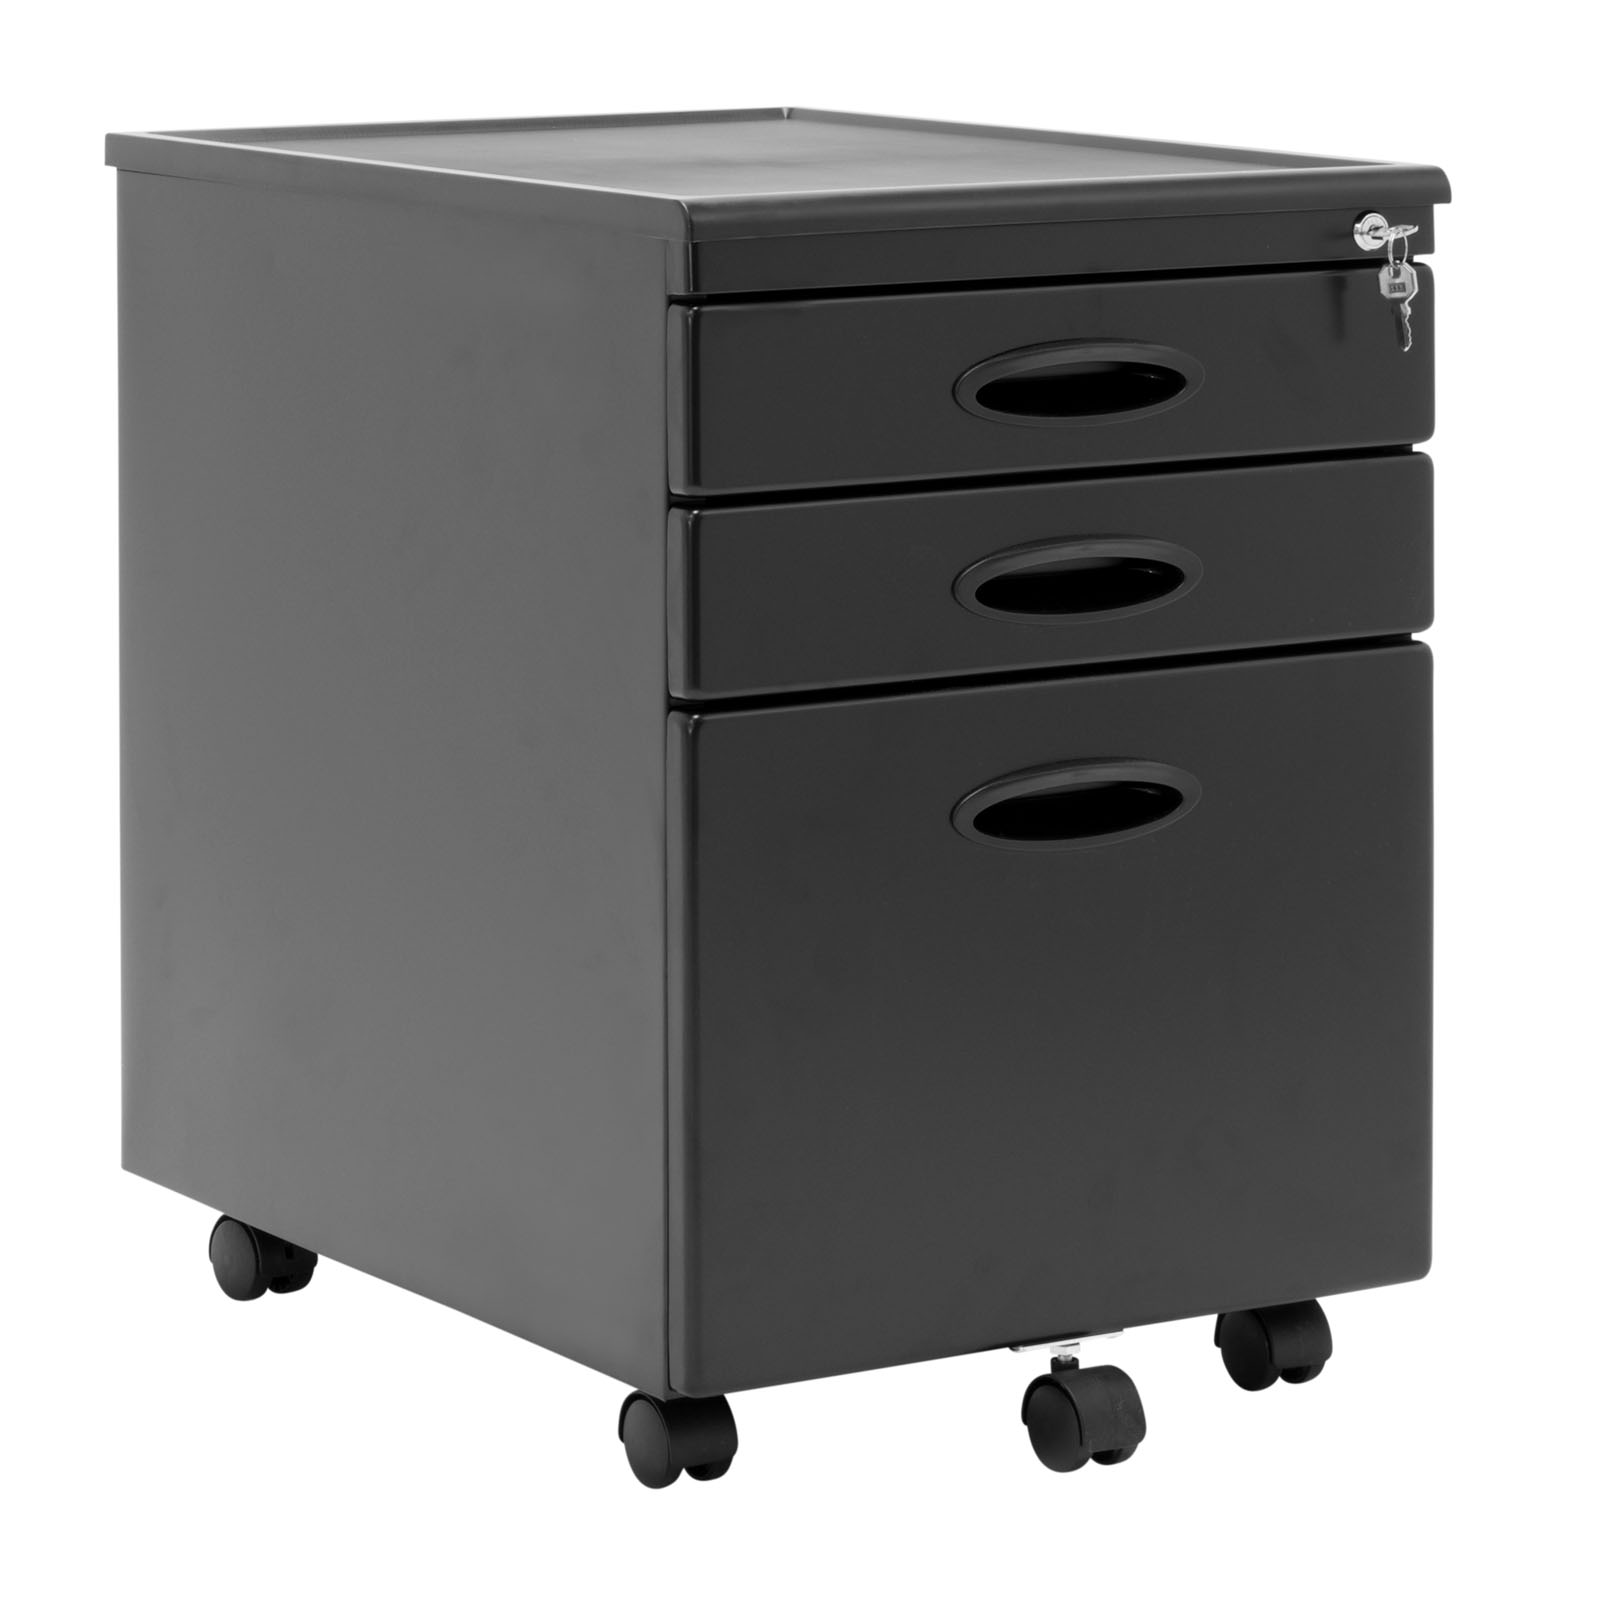 Calico designs home office furniture storage 3 drawer for Mobile furniture